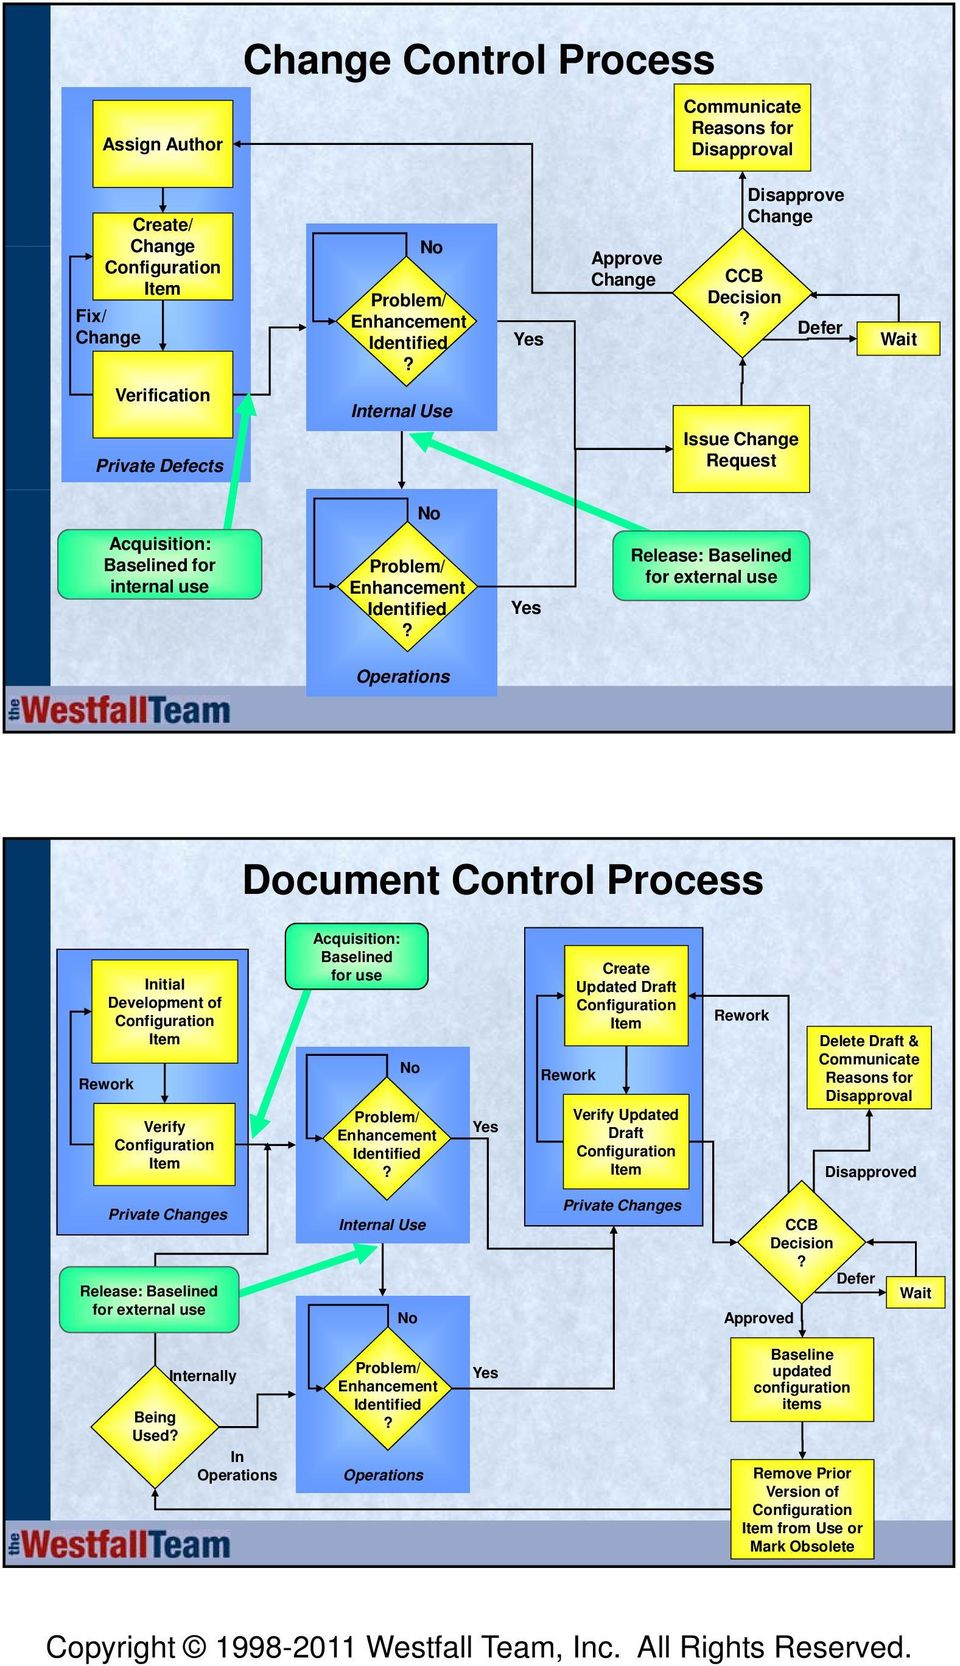 Yes Release: Baselined for external use Operations Document Control Process Initial Development of Item Rework Verify Item Acquisition: Baselined for use No Problem/ Enhancement Identified?